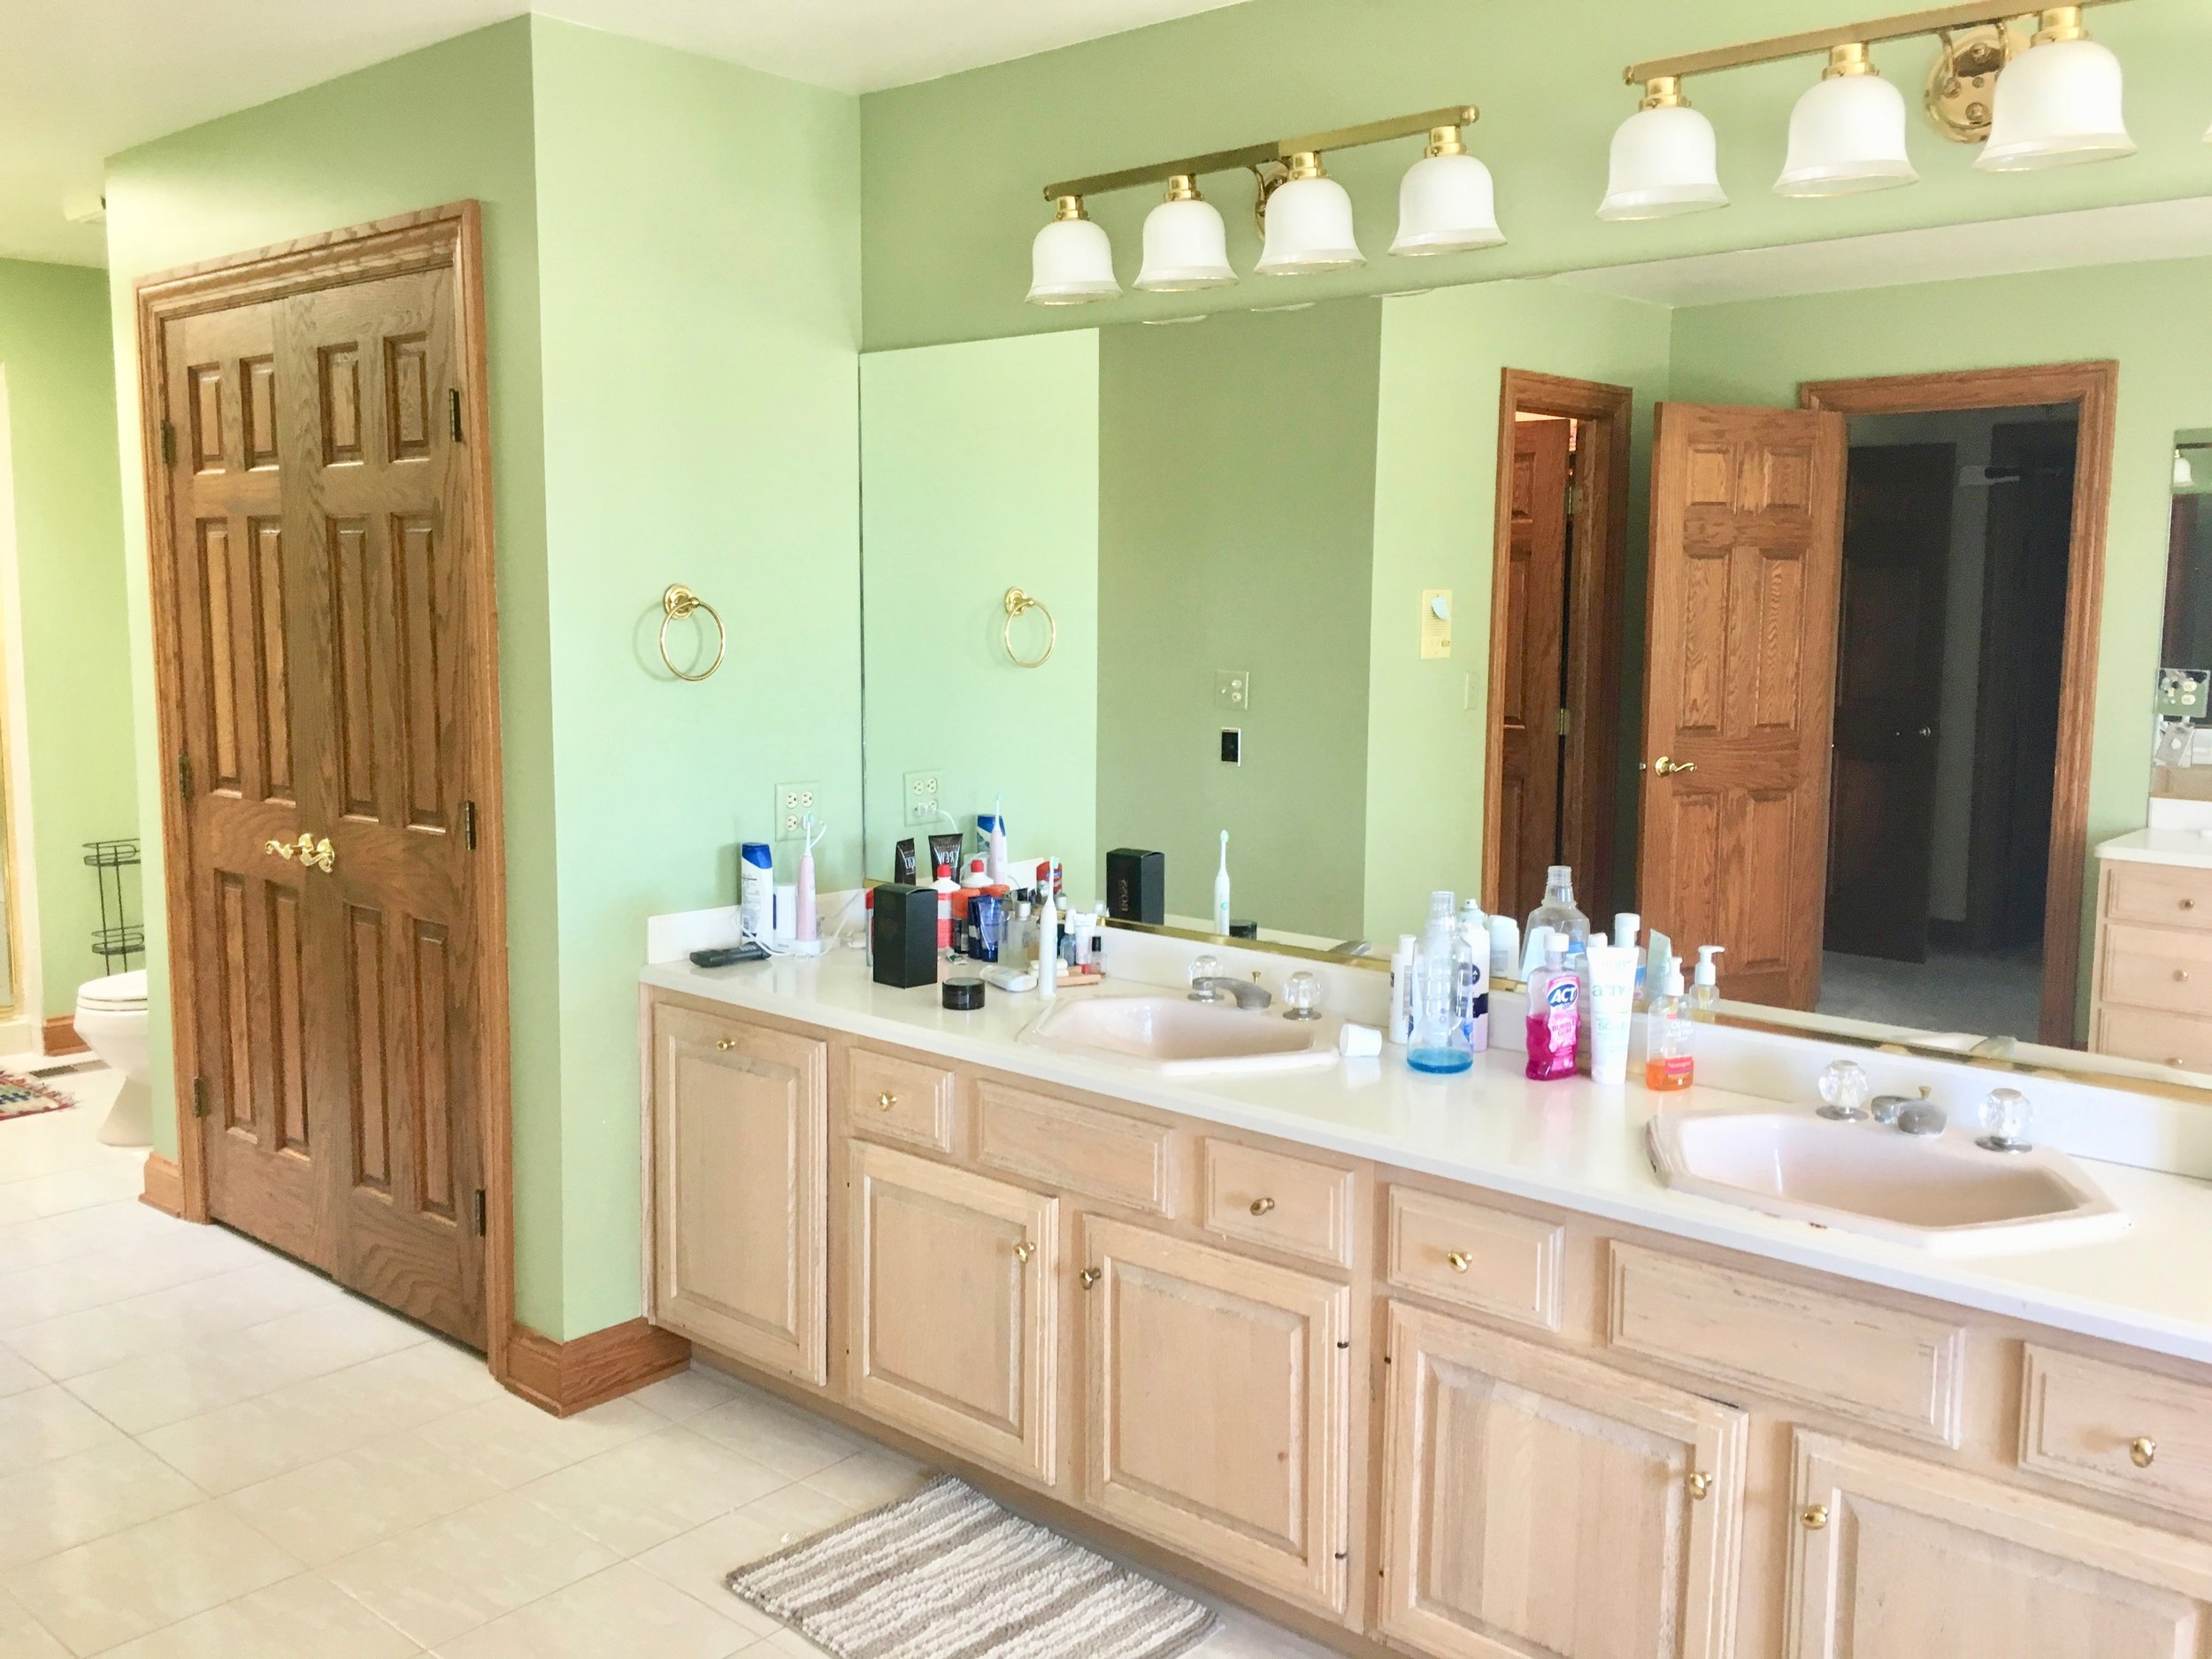 NAPERVILLE IL. BATHROOM RENOVATIONS & UPDATING- BEFORE